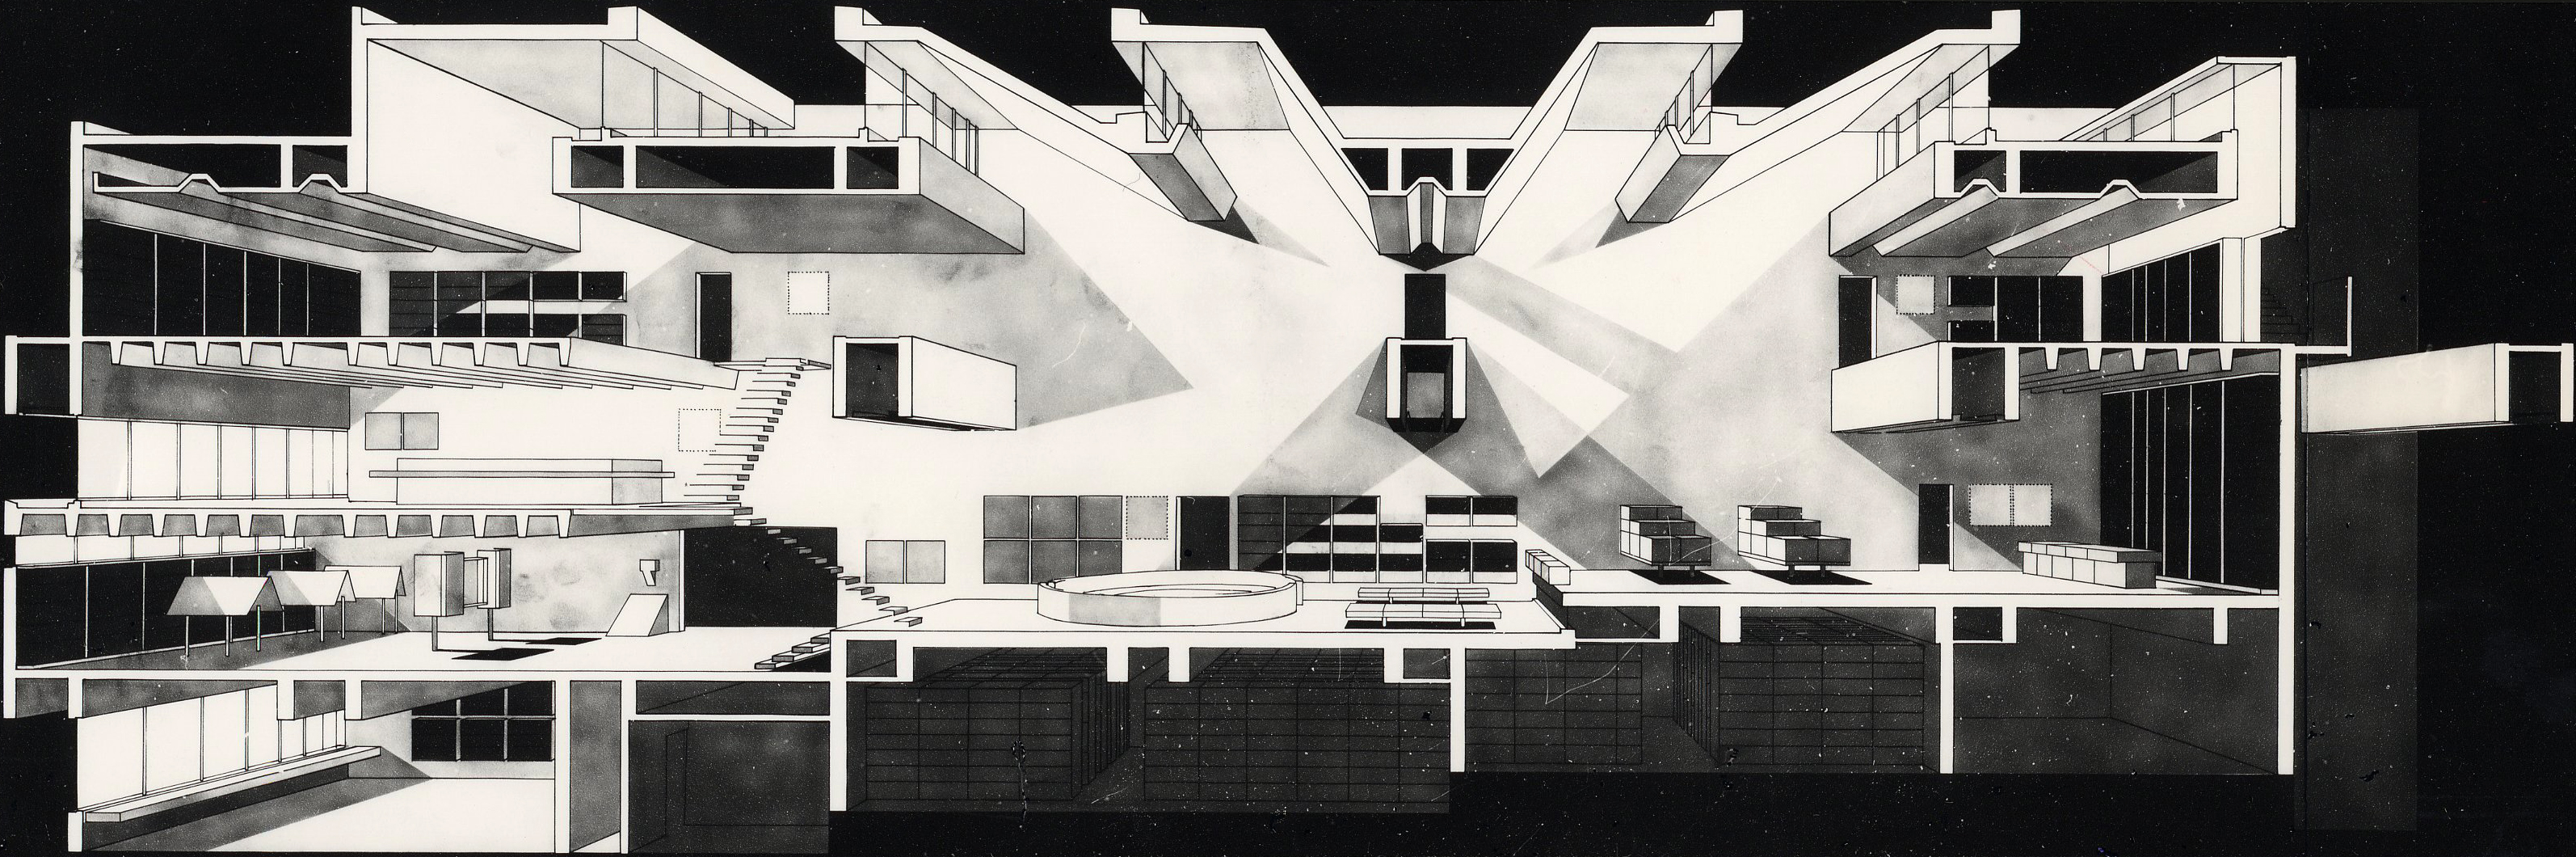 Section perspective, Ōita Prefectural Library, photo courtesy of Arata Isozaki and Associates